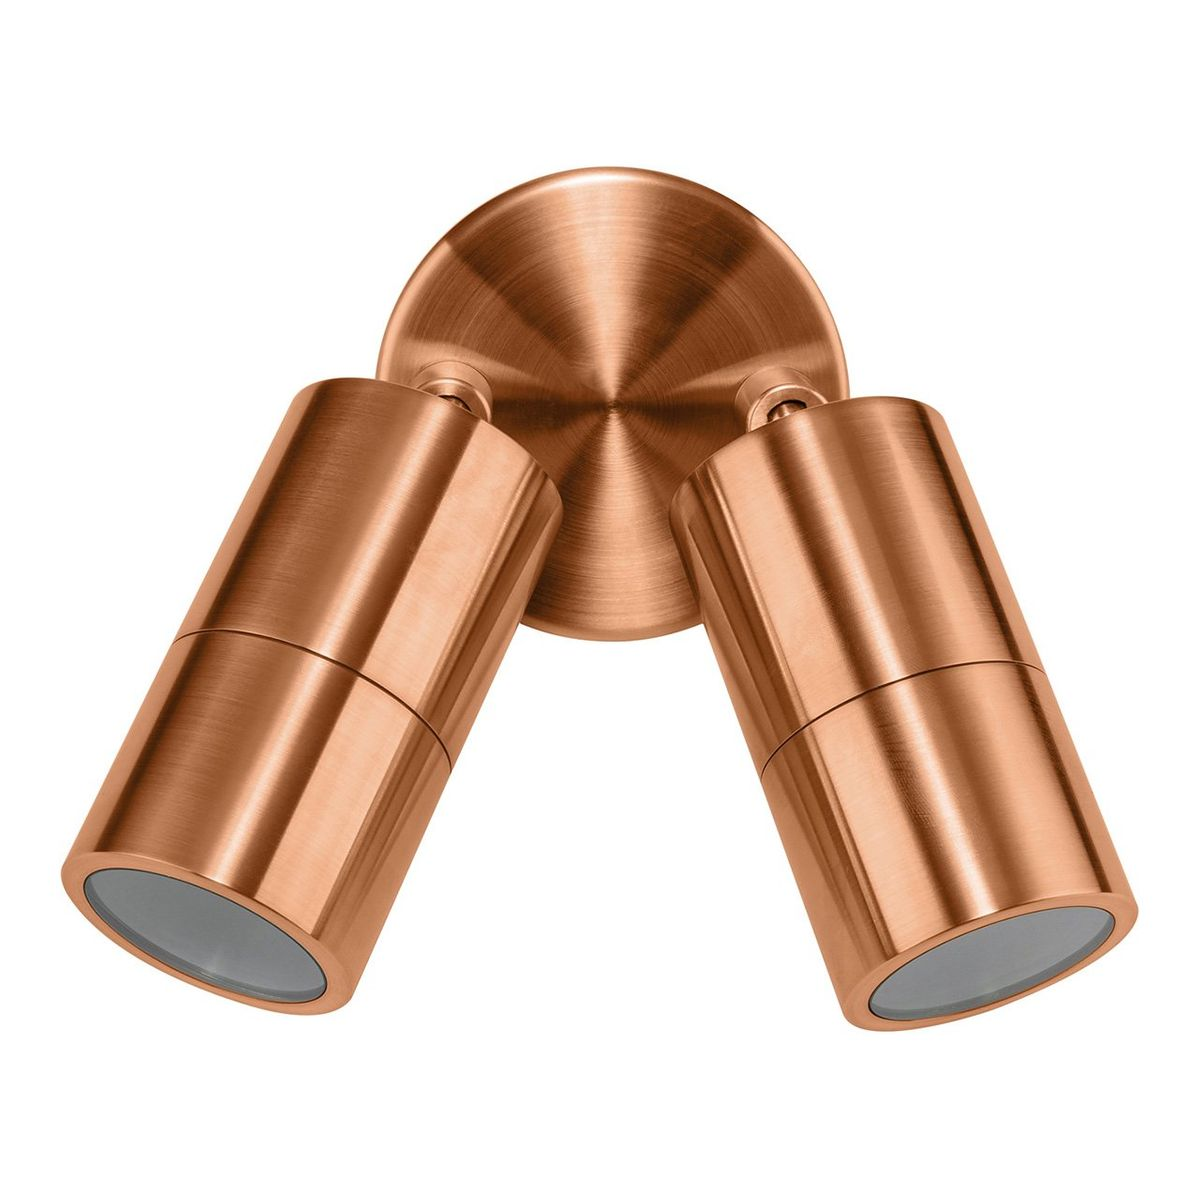 HV1315-HV1317 - Tivah Solid Copper Double Adjustable Spot Lights – Bild 1